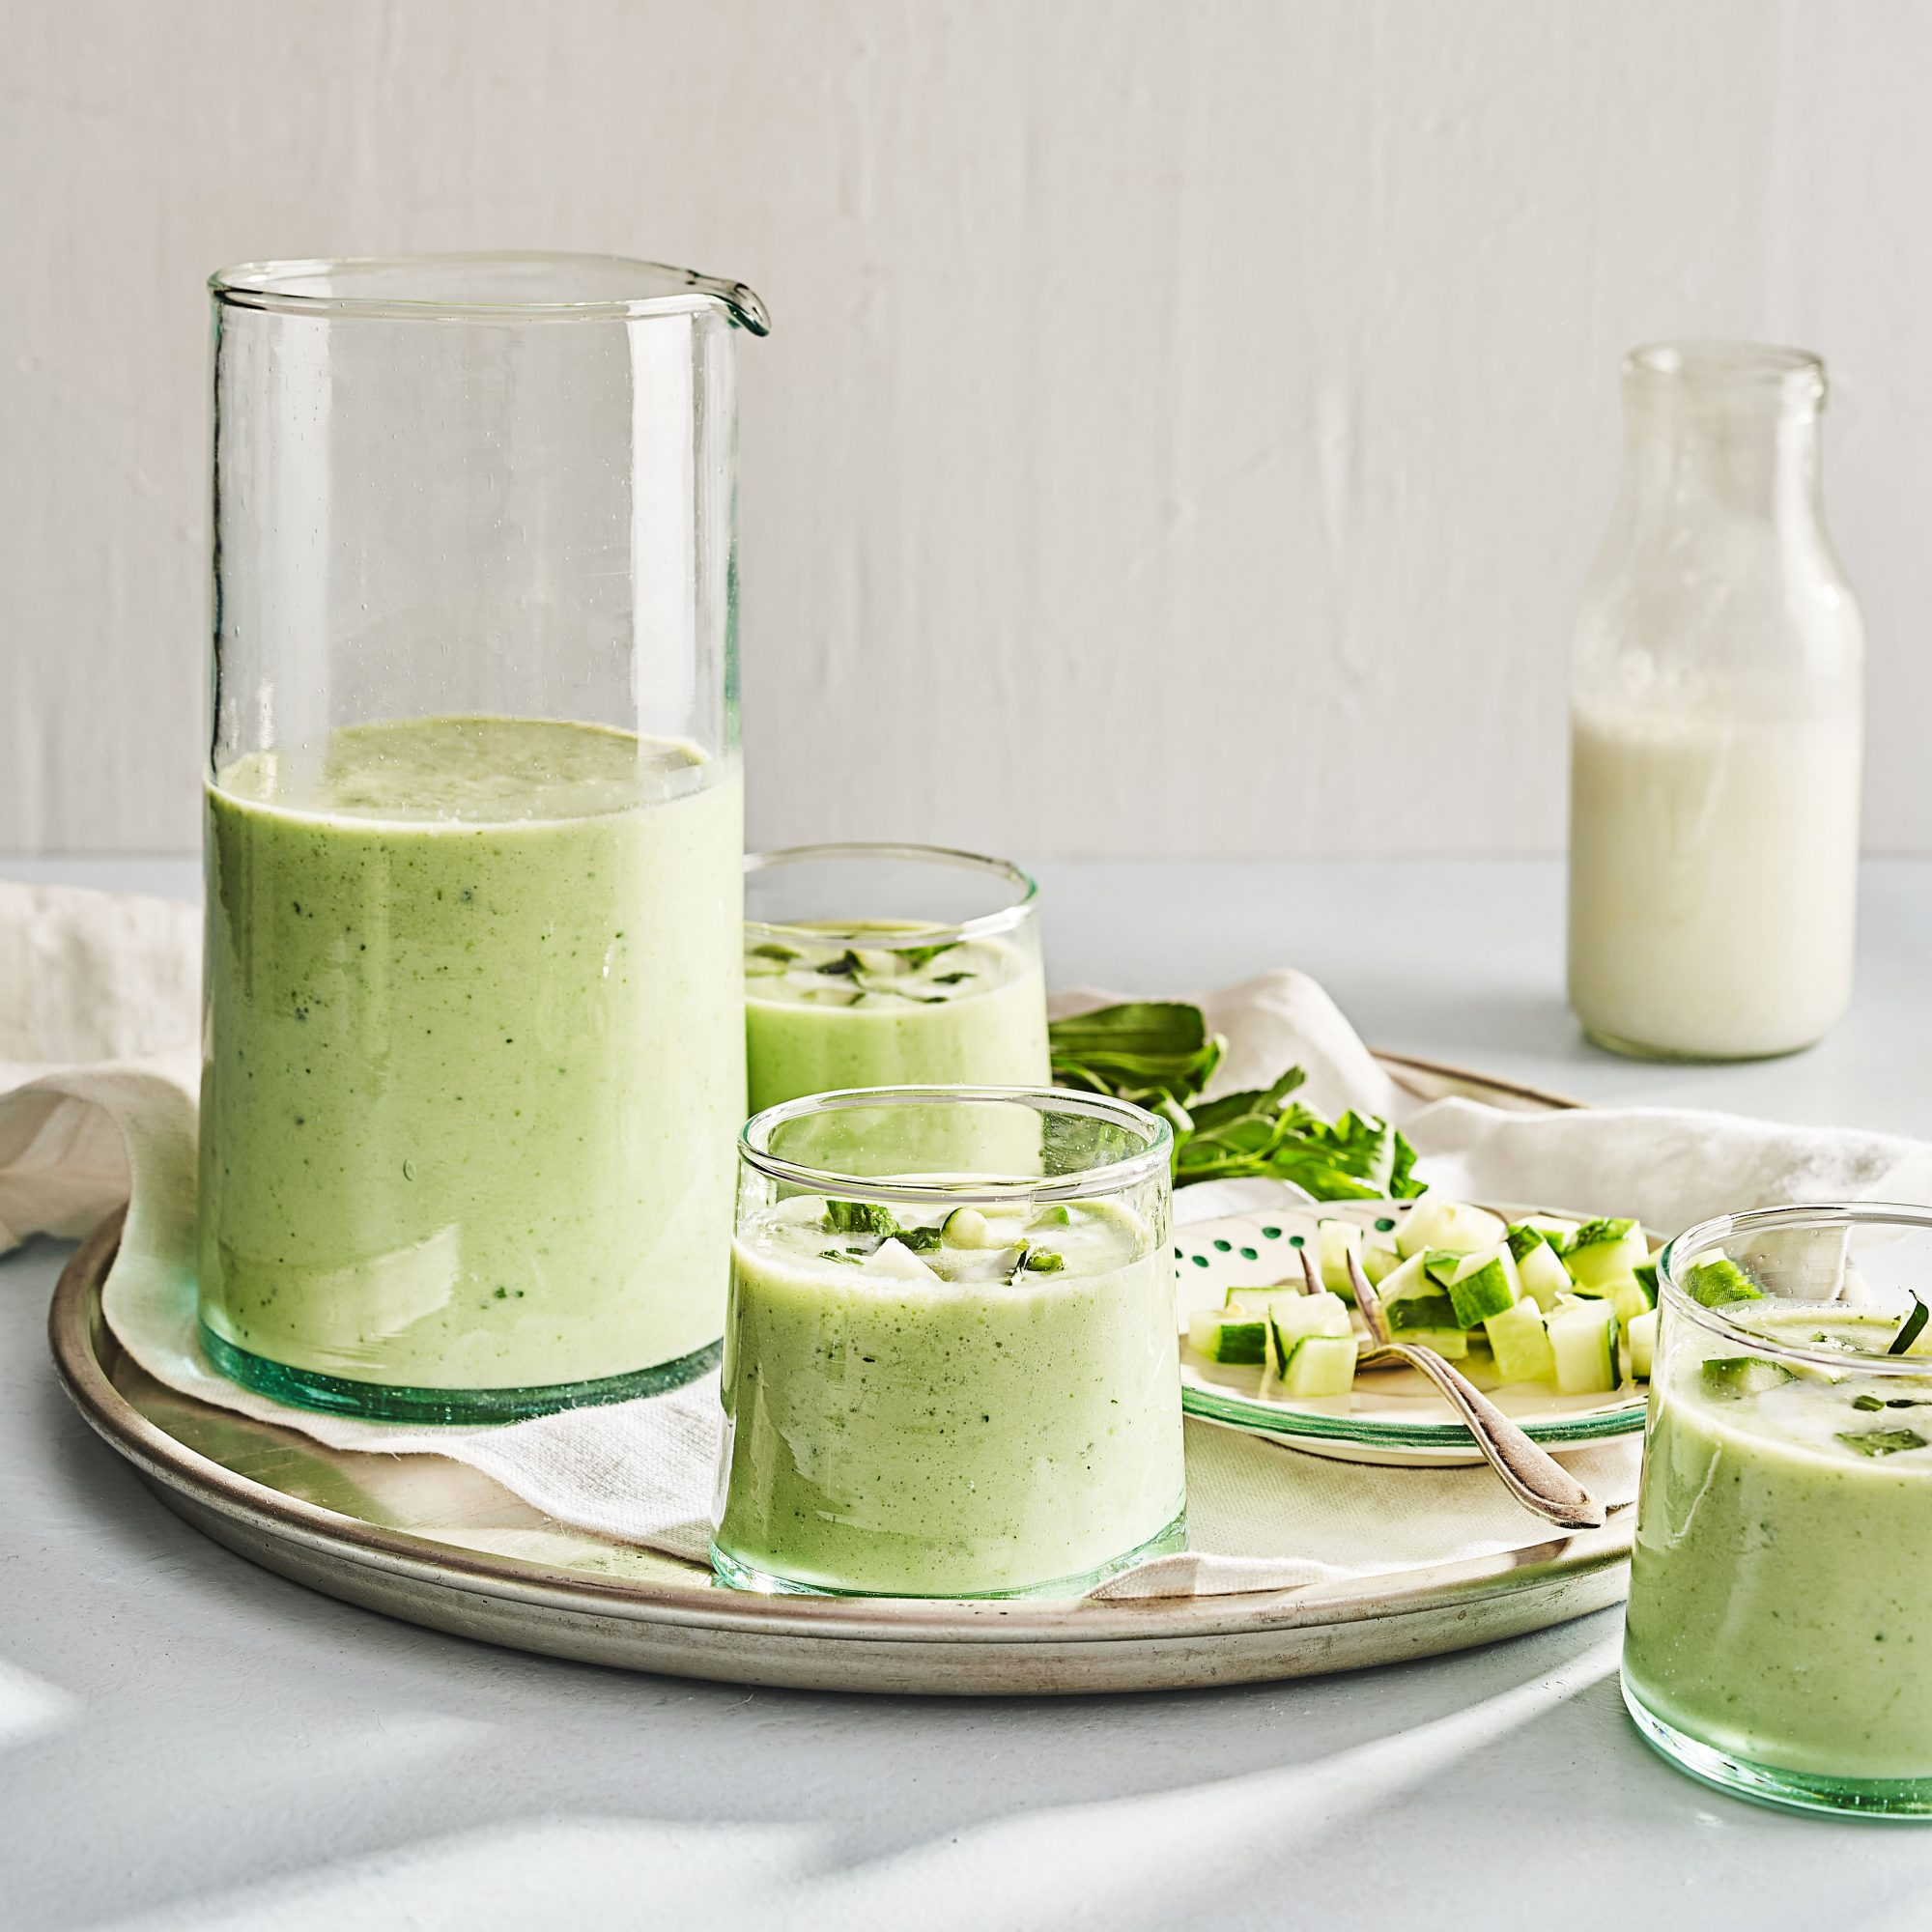 Cucumber-Buttermilk Soup